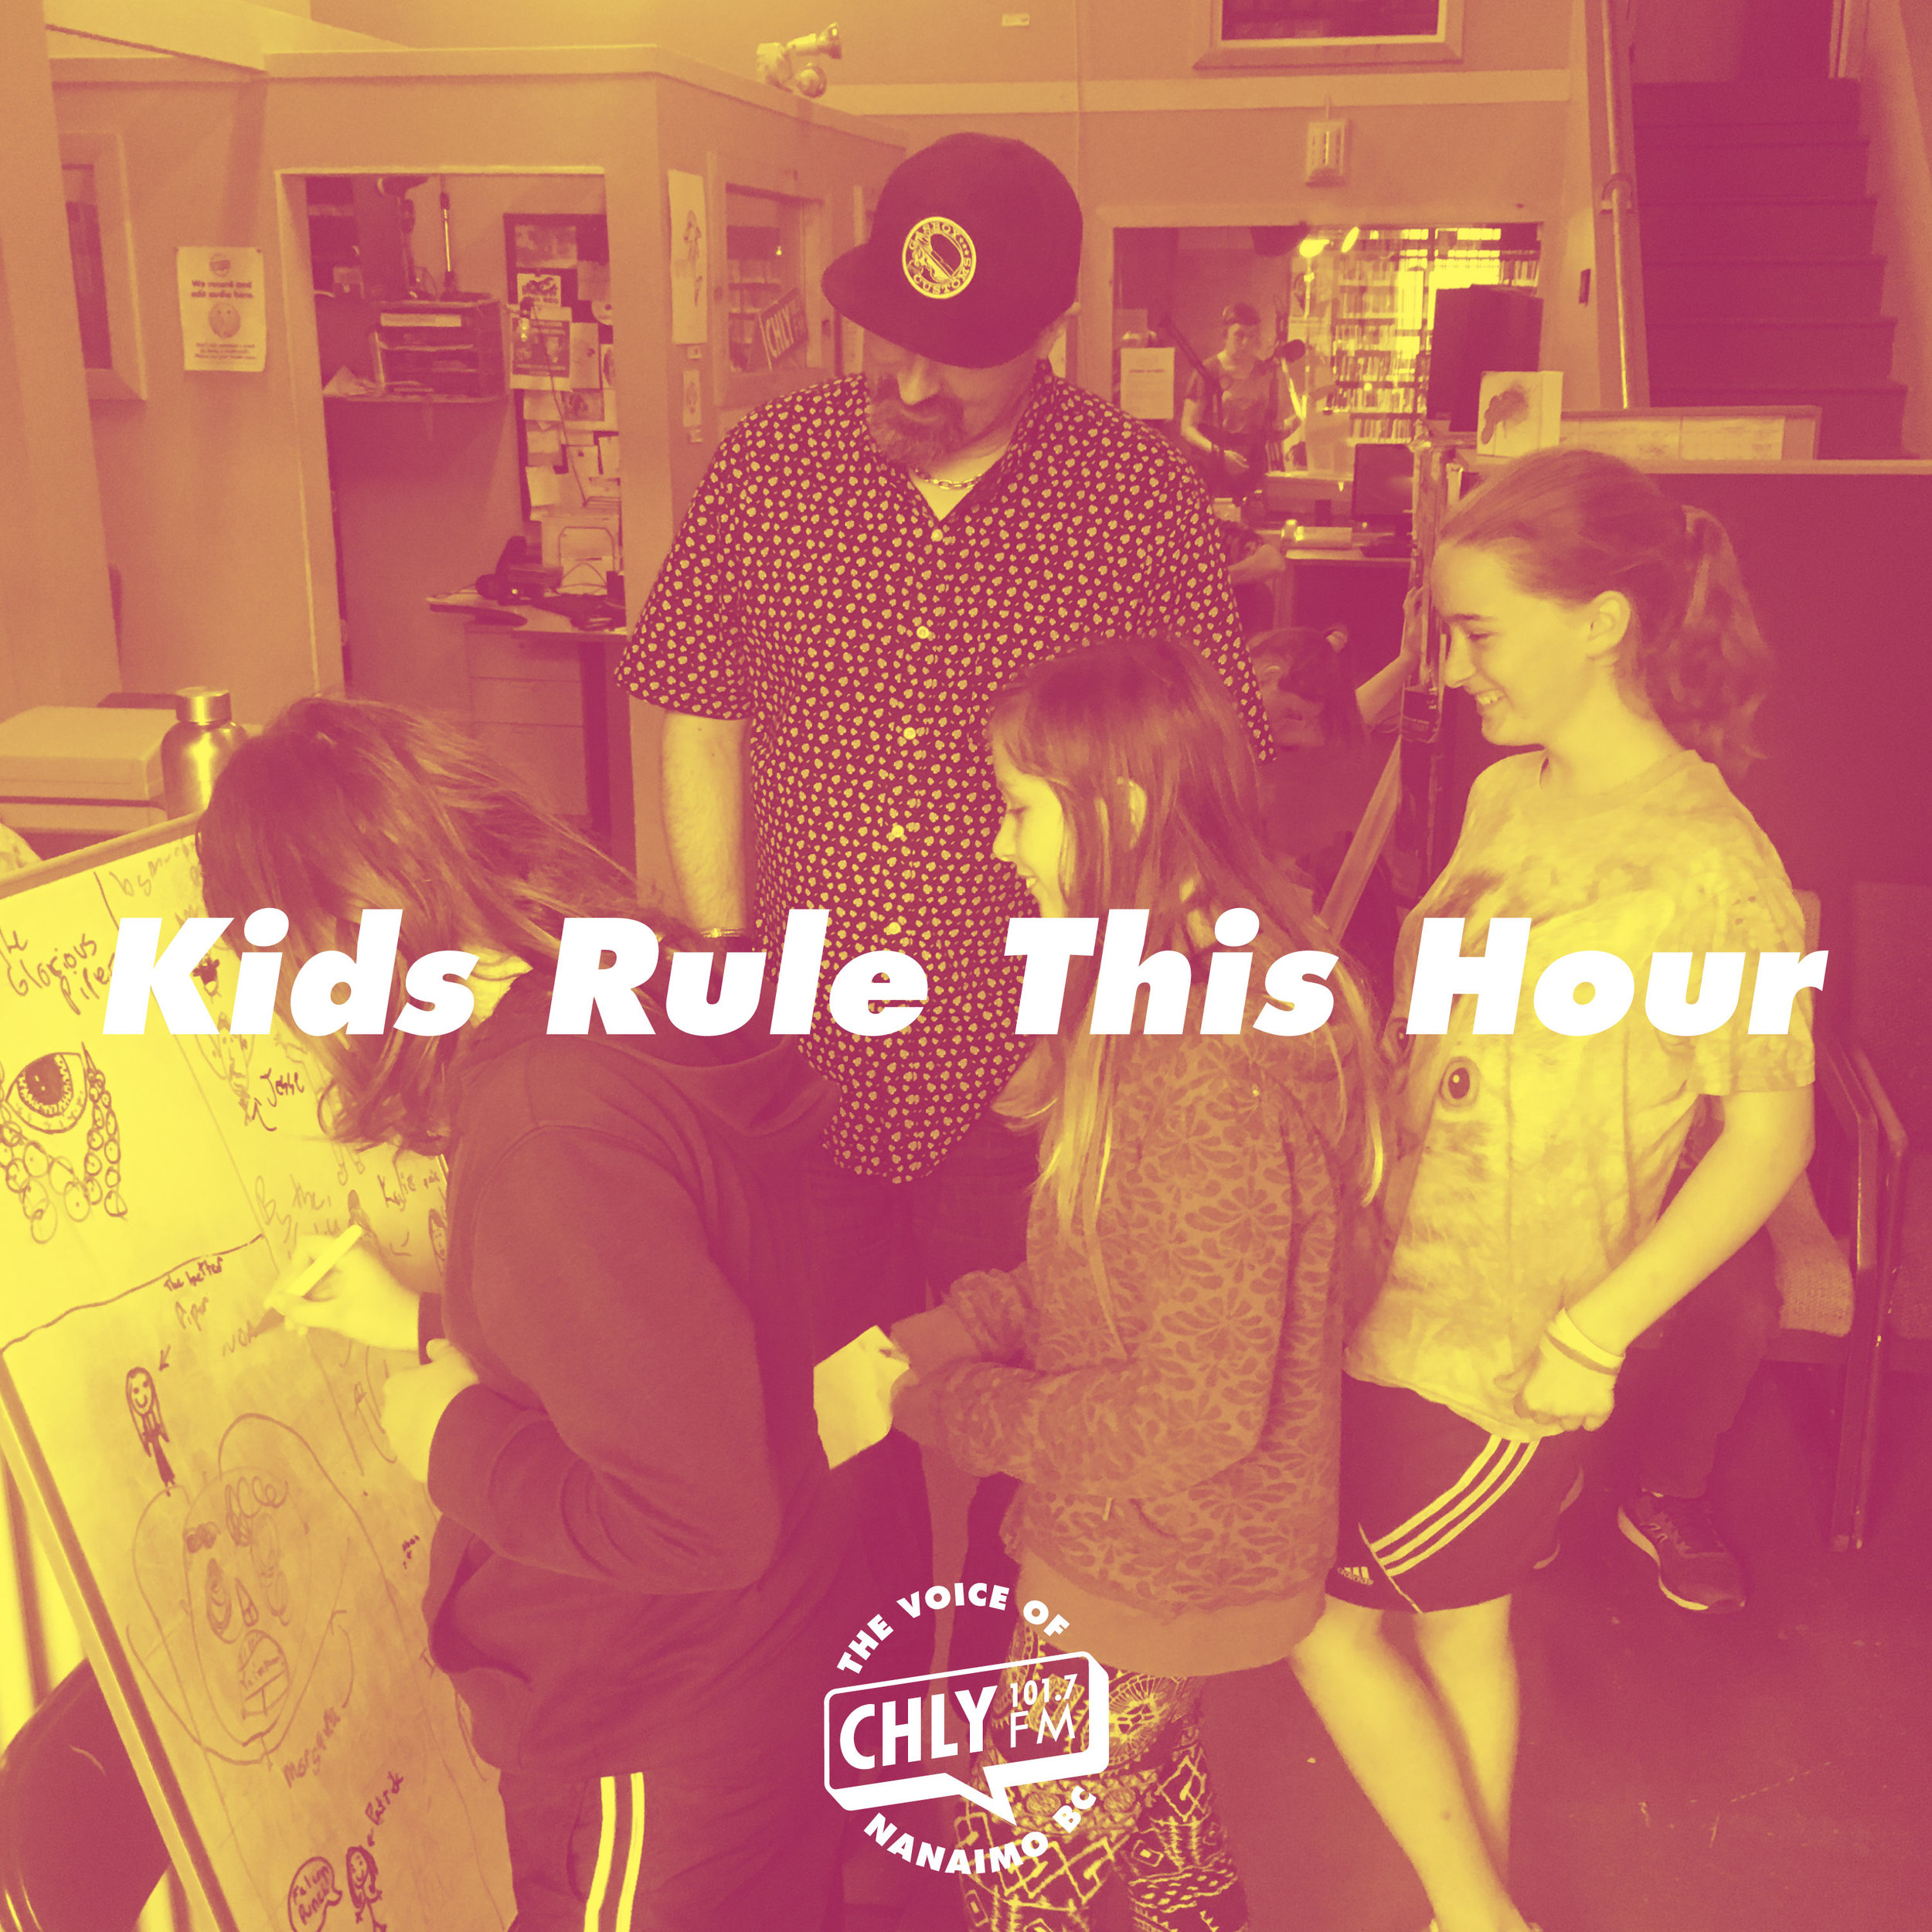 CHLY-Show-Logos-Kids-Rule-this-Hour-V5.jpg